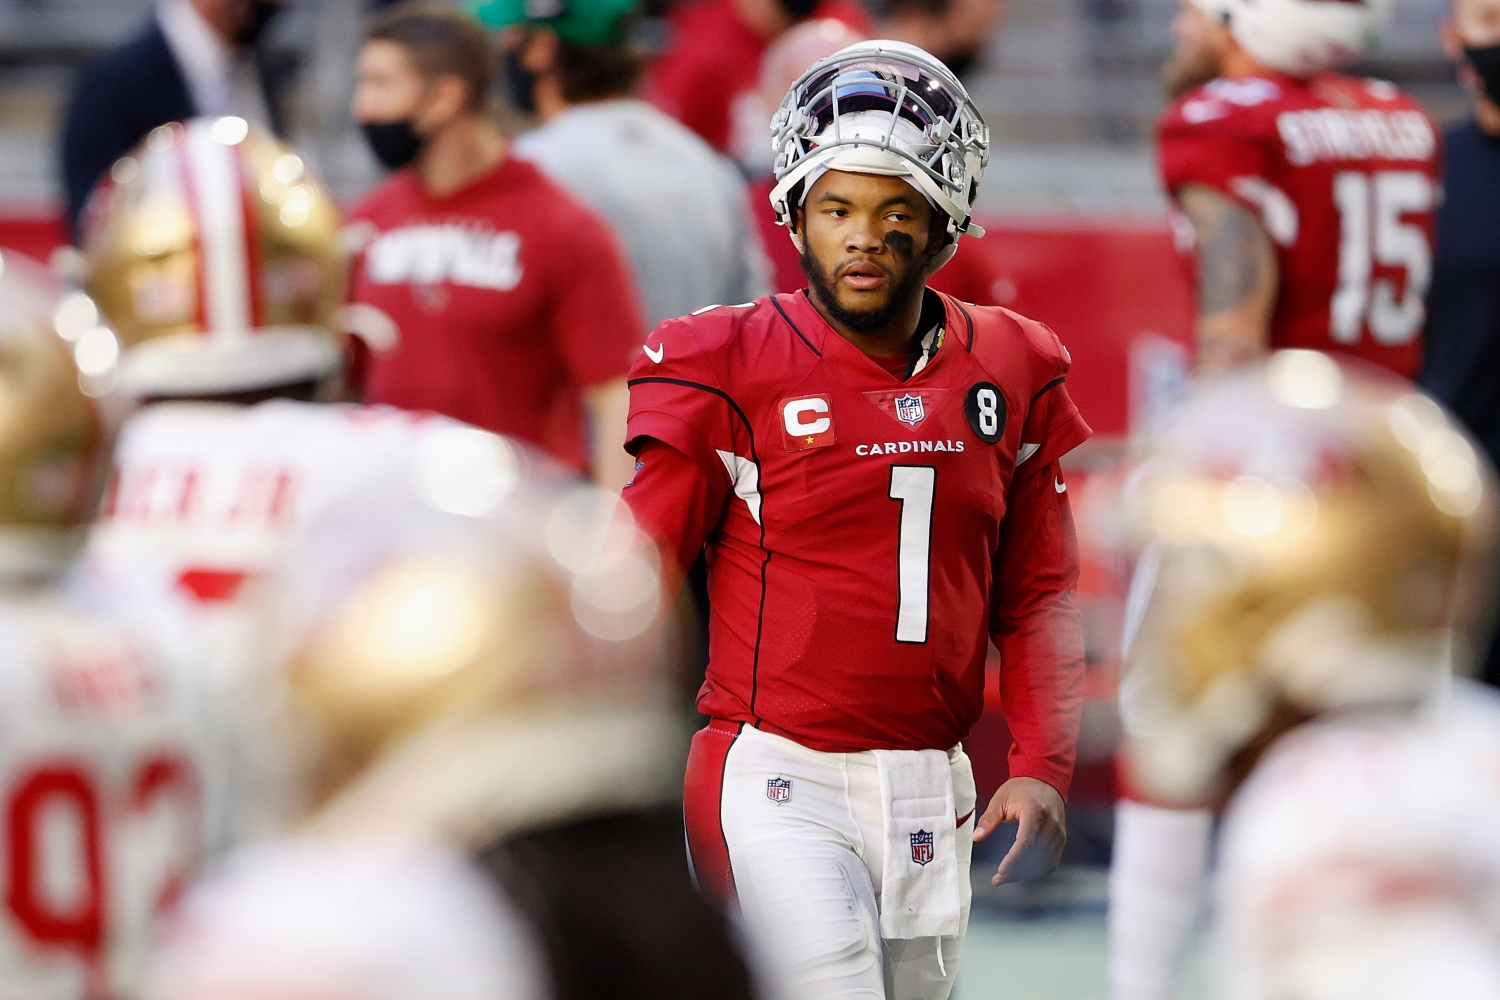 In a win or go home game against the Los Angeles Rams, the Cardinals received some good news about Kyler Murray.